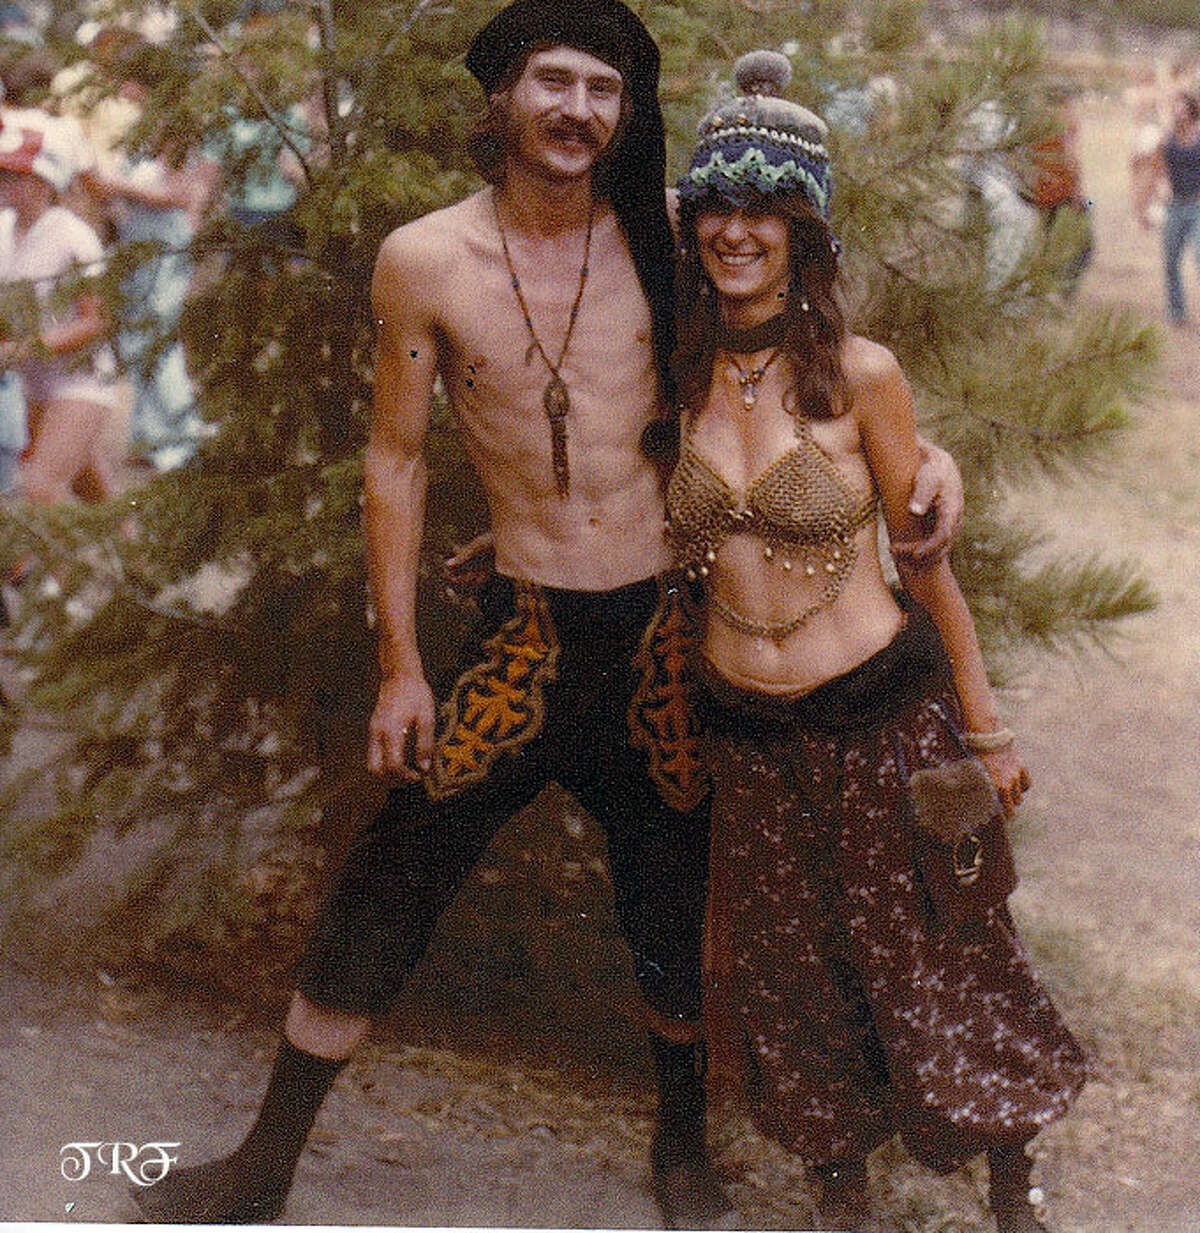 PHOTOS: Texas Renaissance Festival through the years For its fortieth anniversary the Texas Renaissance Festival released a handful of photos from its earliest days on the grounds. As you can see, not much has changed beyond the hairstyles.